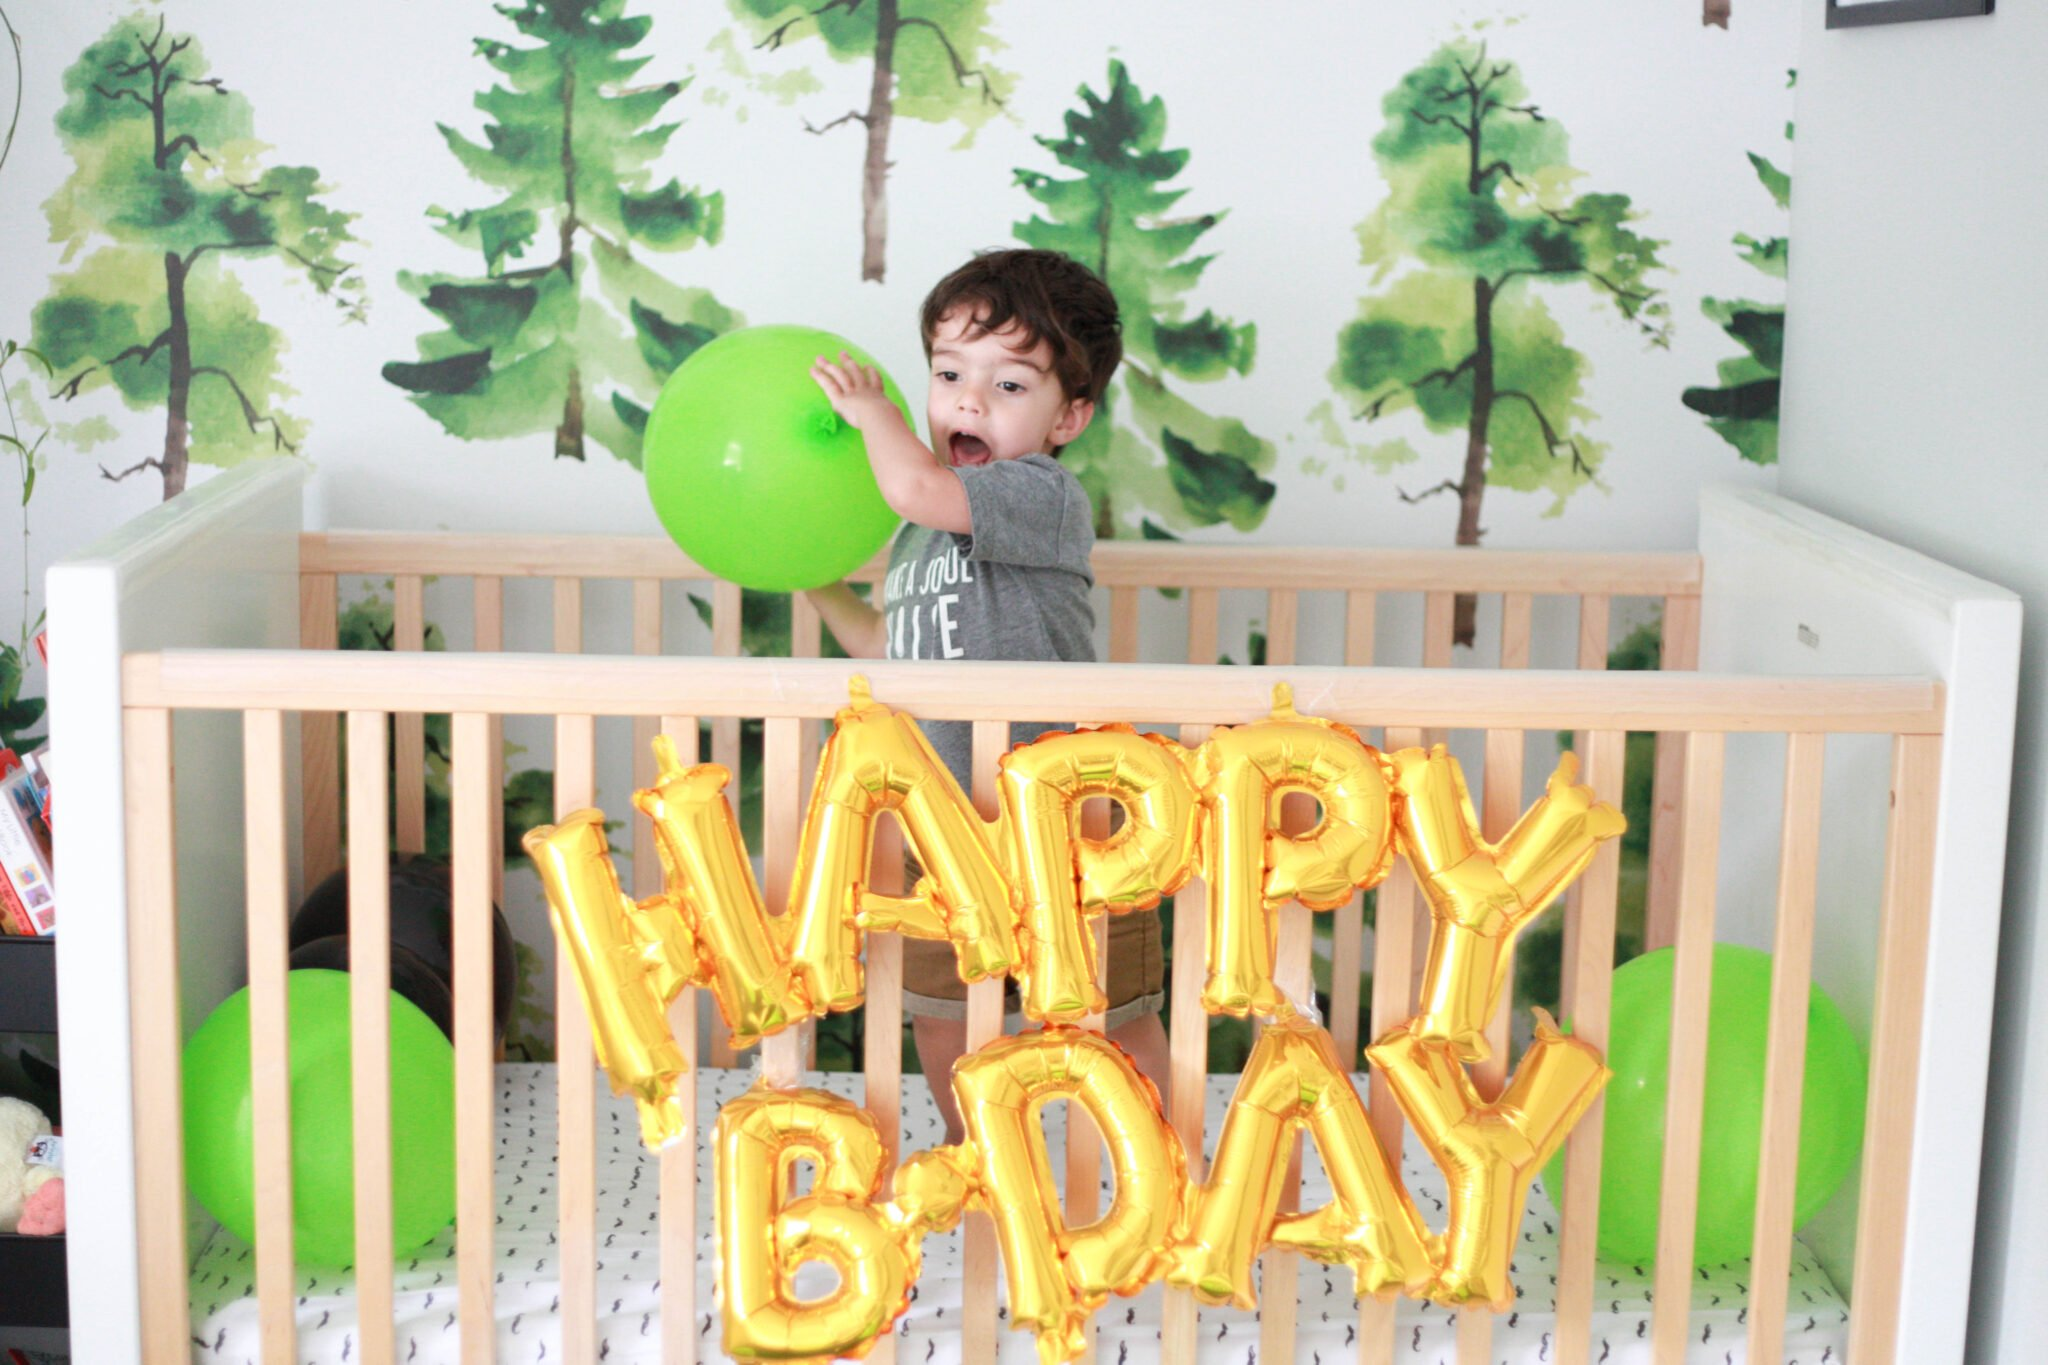 Start celebrating your two year old's birthday by filling their crib with balloons!